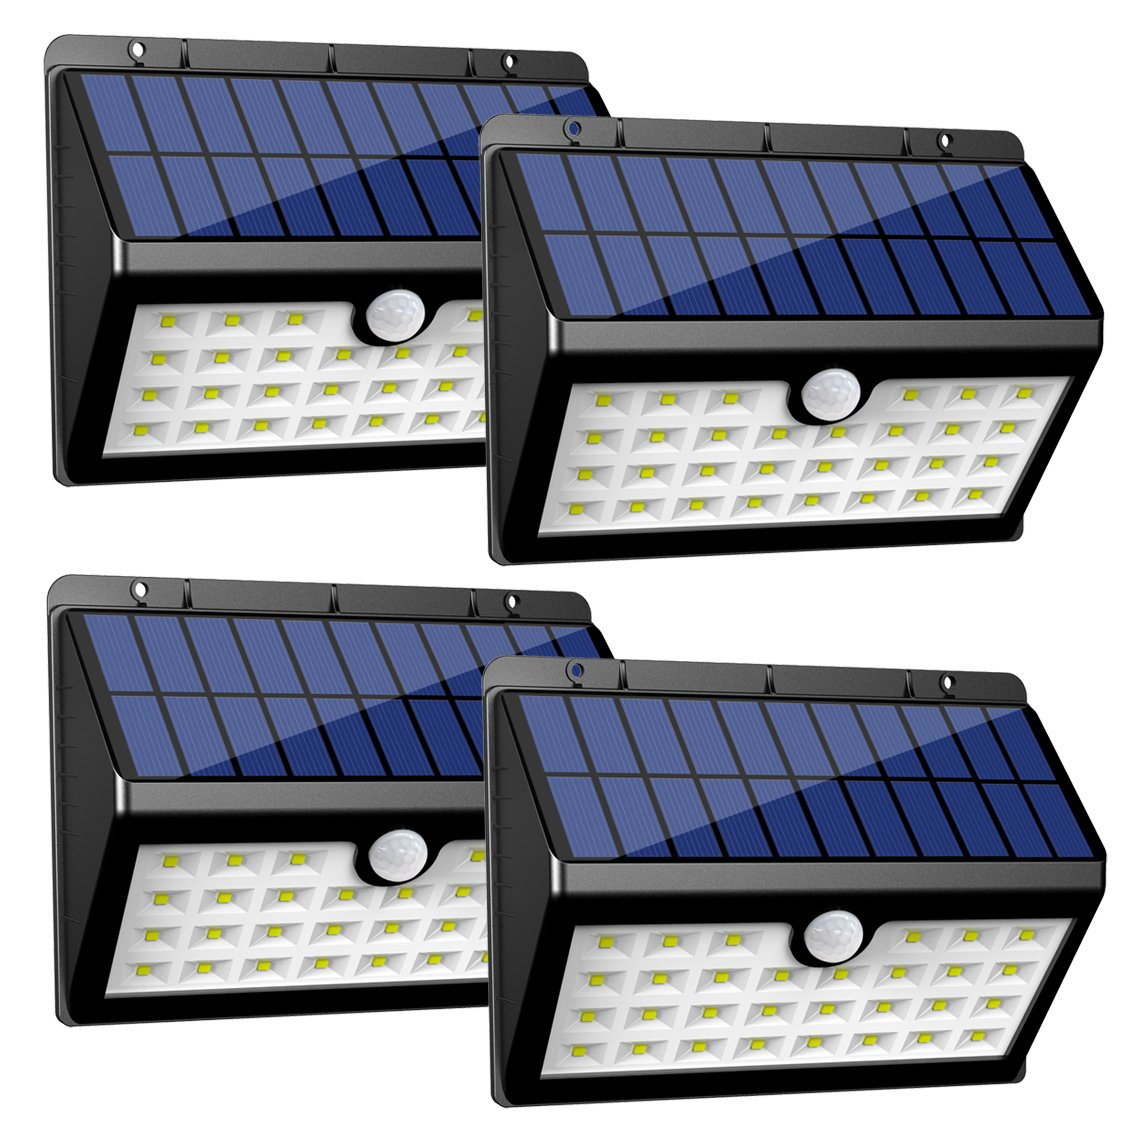 InnoGear Solar Lights Outdoor,Motion Sensor Security Night Light with Auto on and Off for Front Door Back Yard Driveway Garden Patio Garage, Pack of 4 by InnoGear